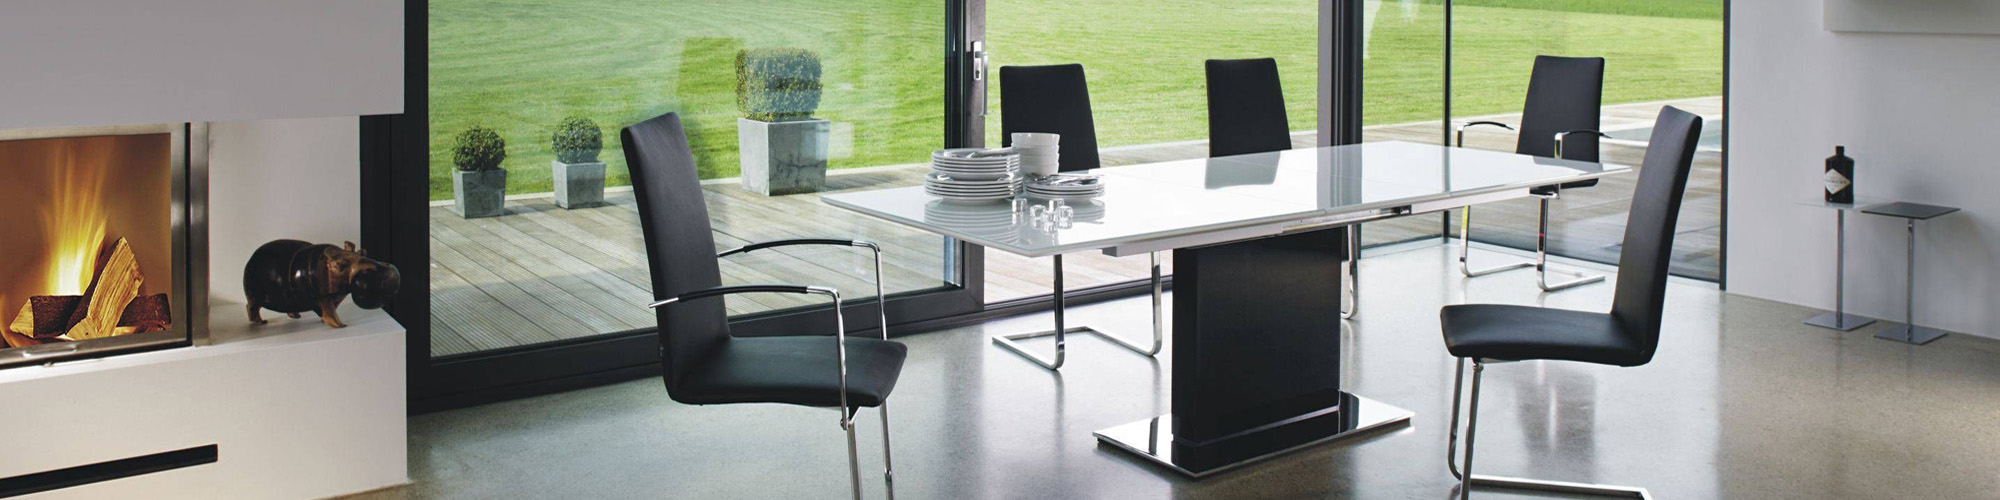 Bacher Tische Furniture